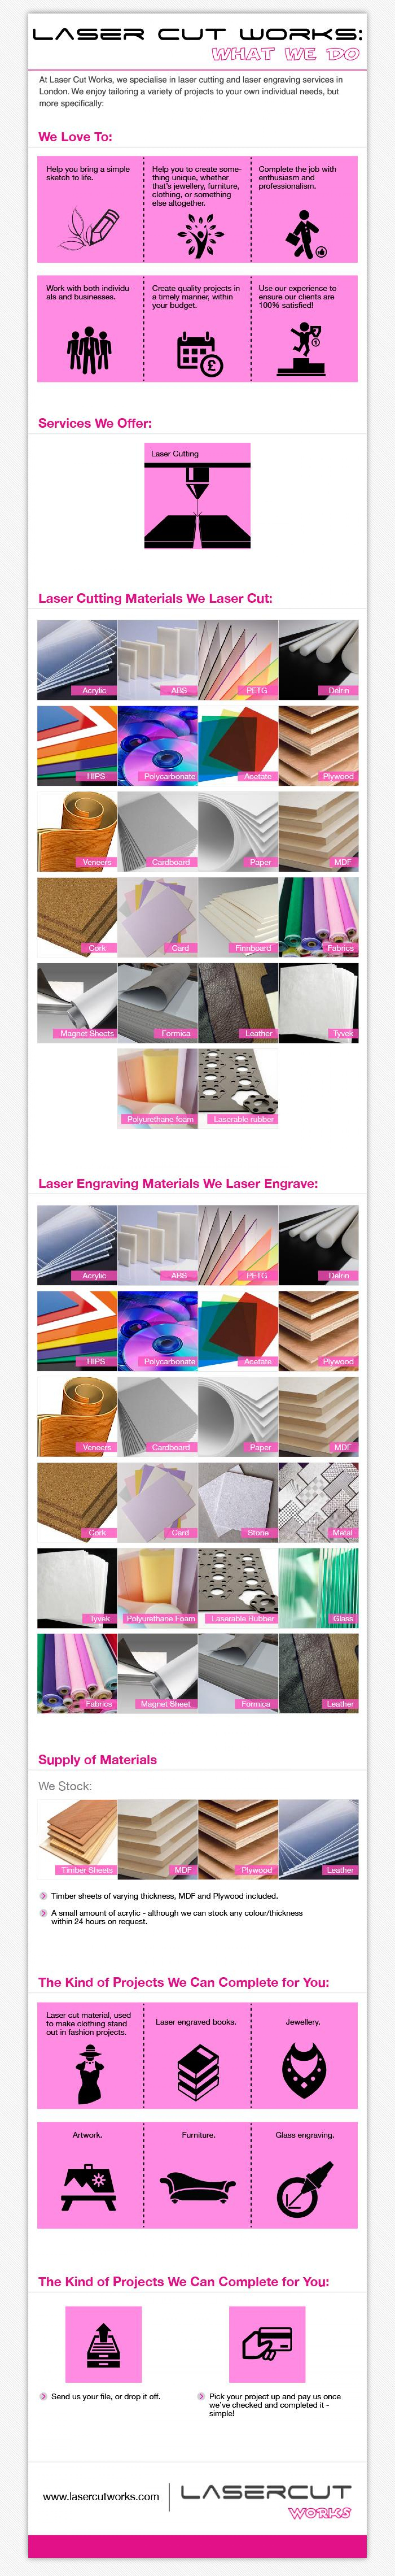 Laser Cut Works: What We Do Infographic